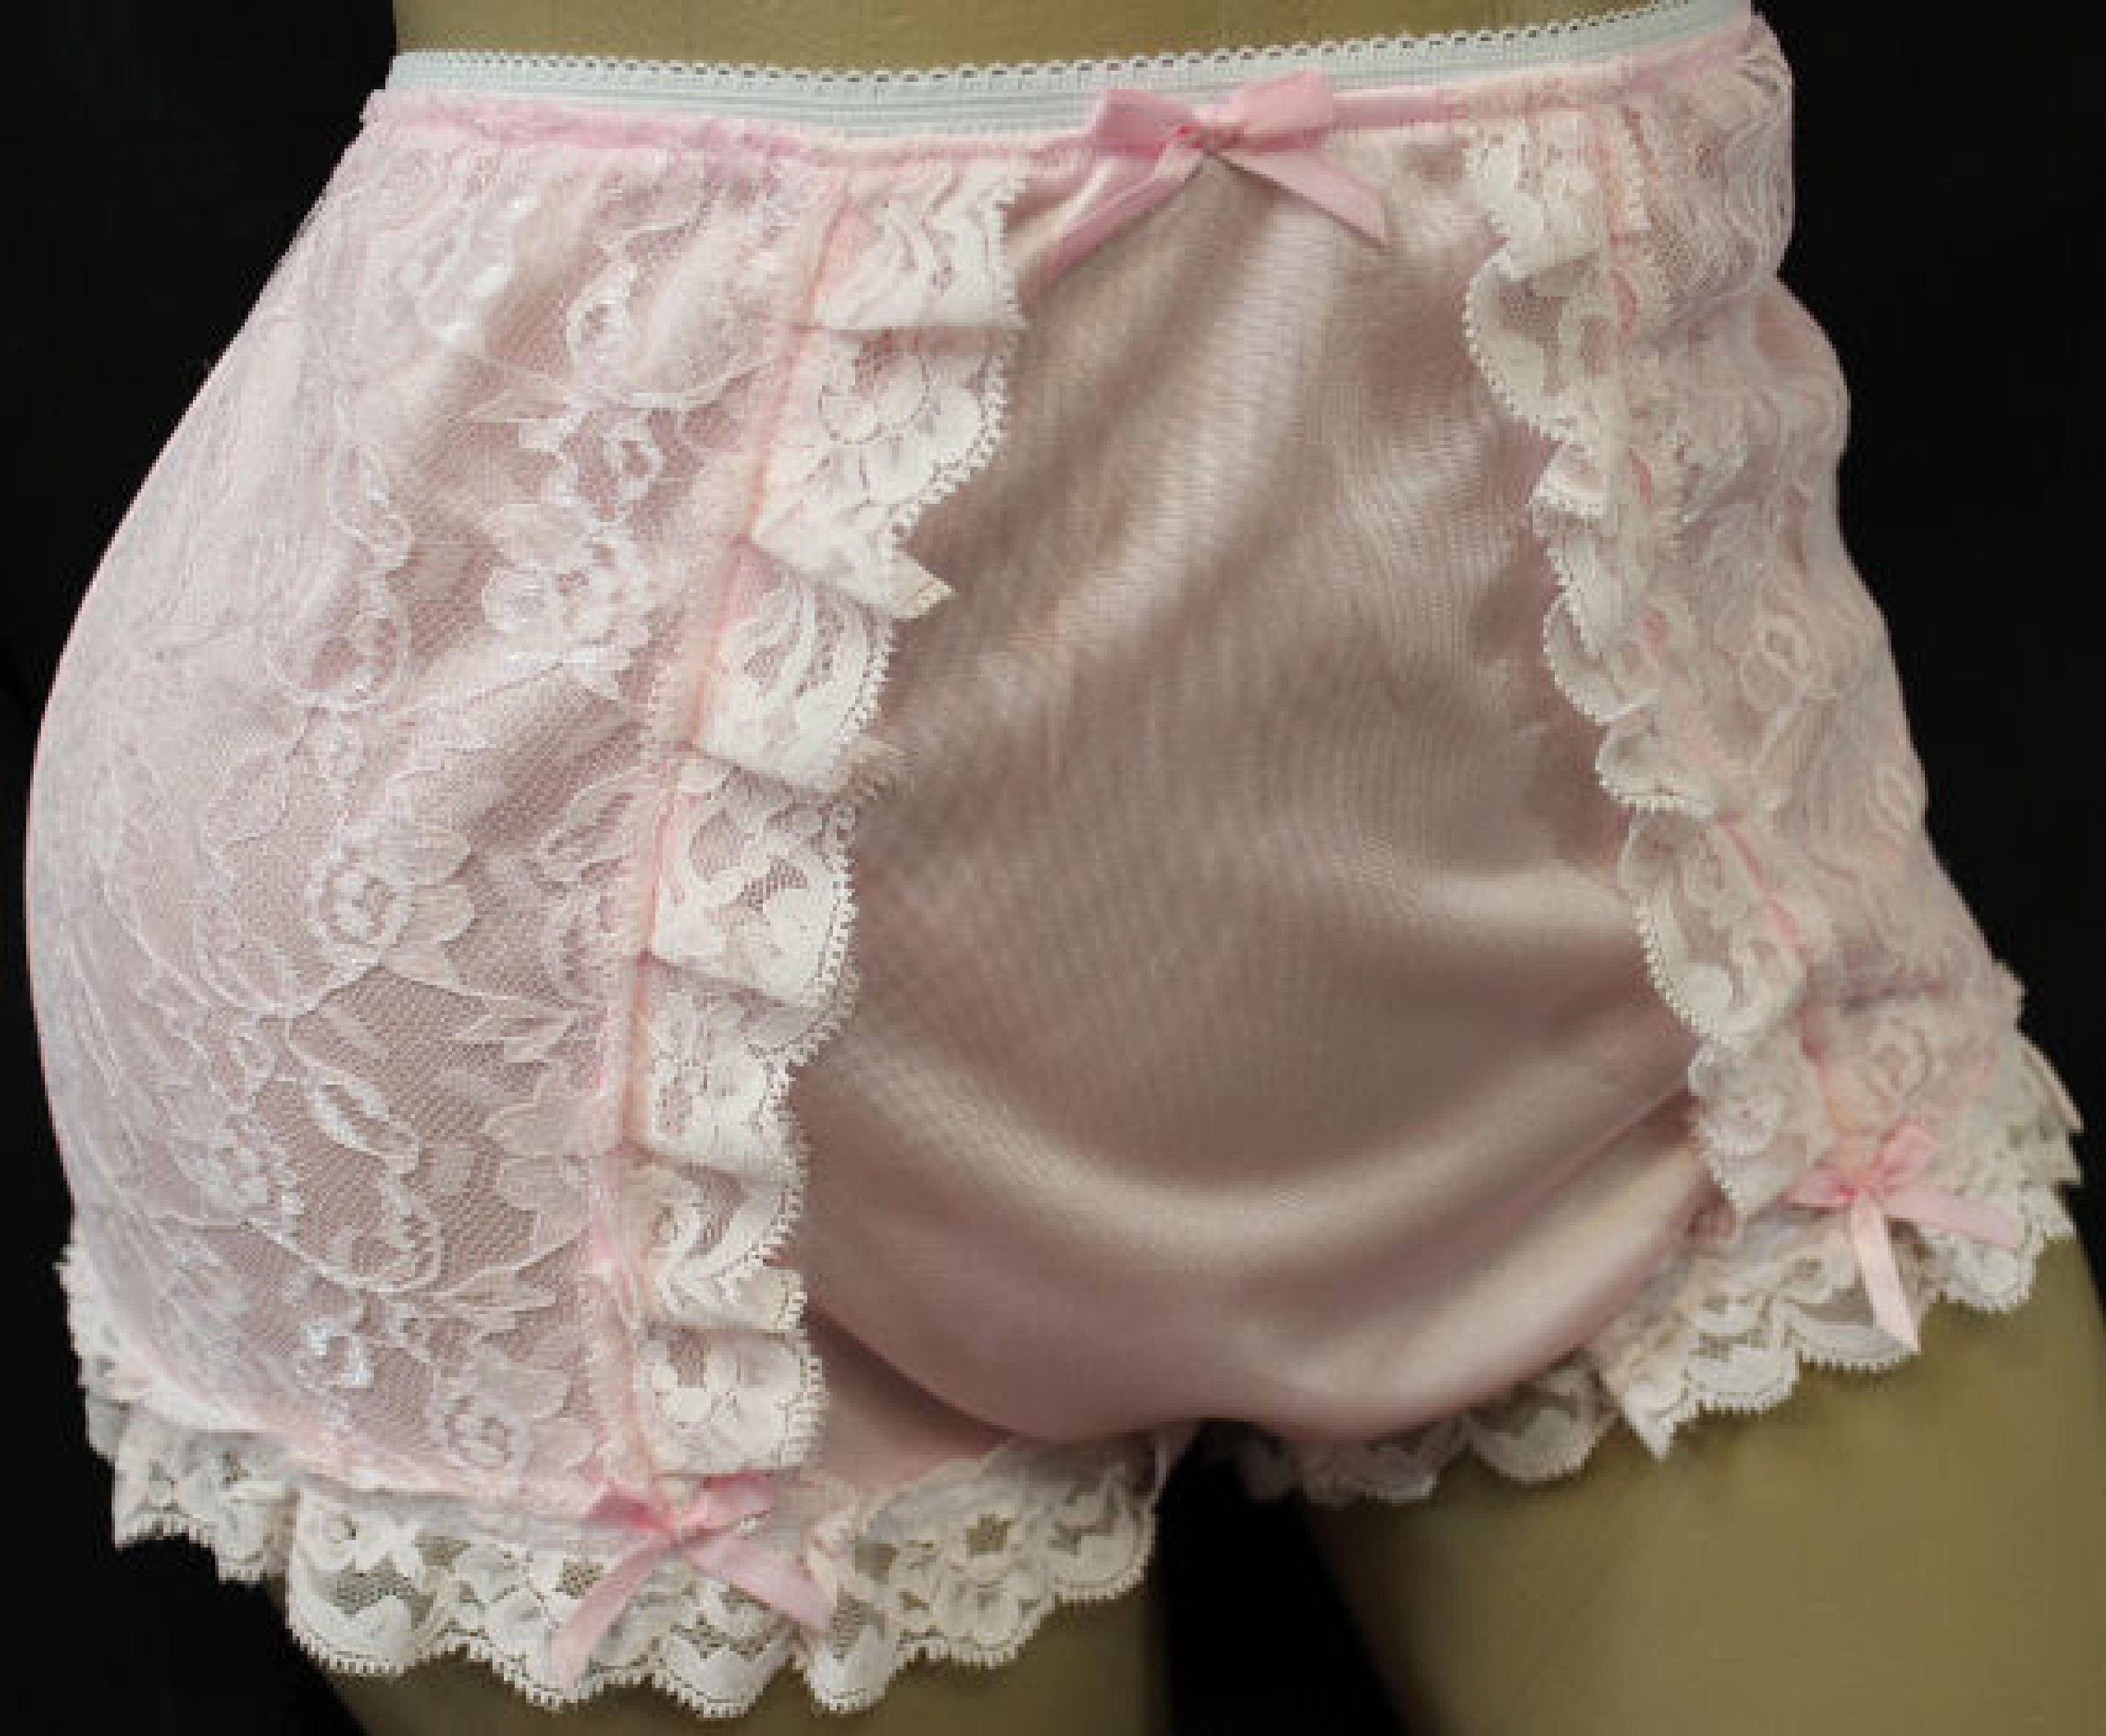 Vintage Style Adult Sissy Tricot  Lace Full Cover Granny Panties - Cross Dresser -8657